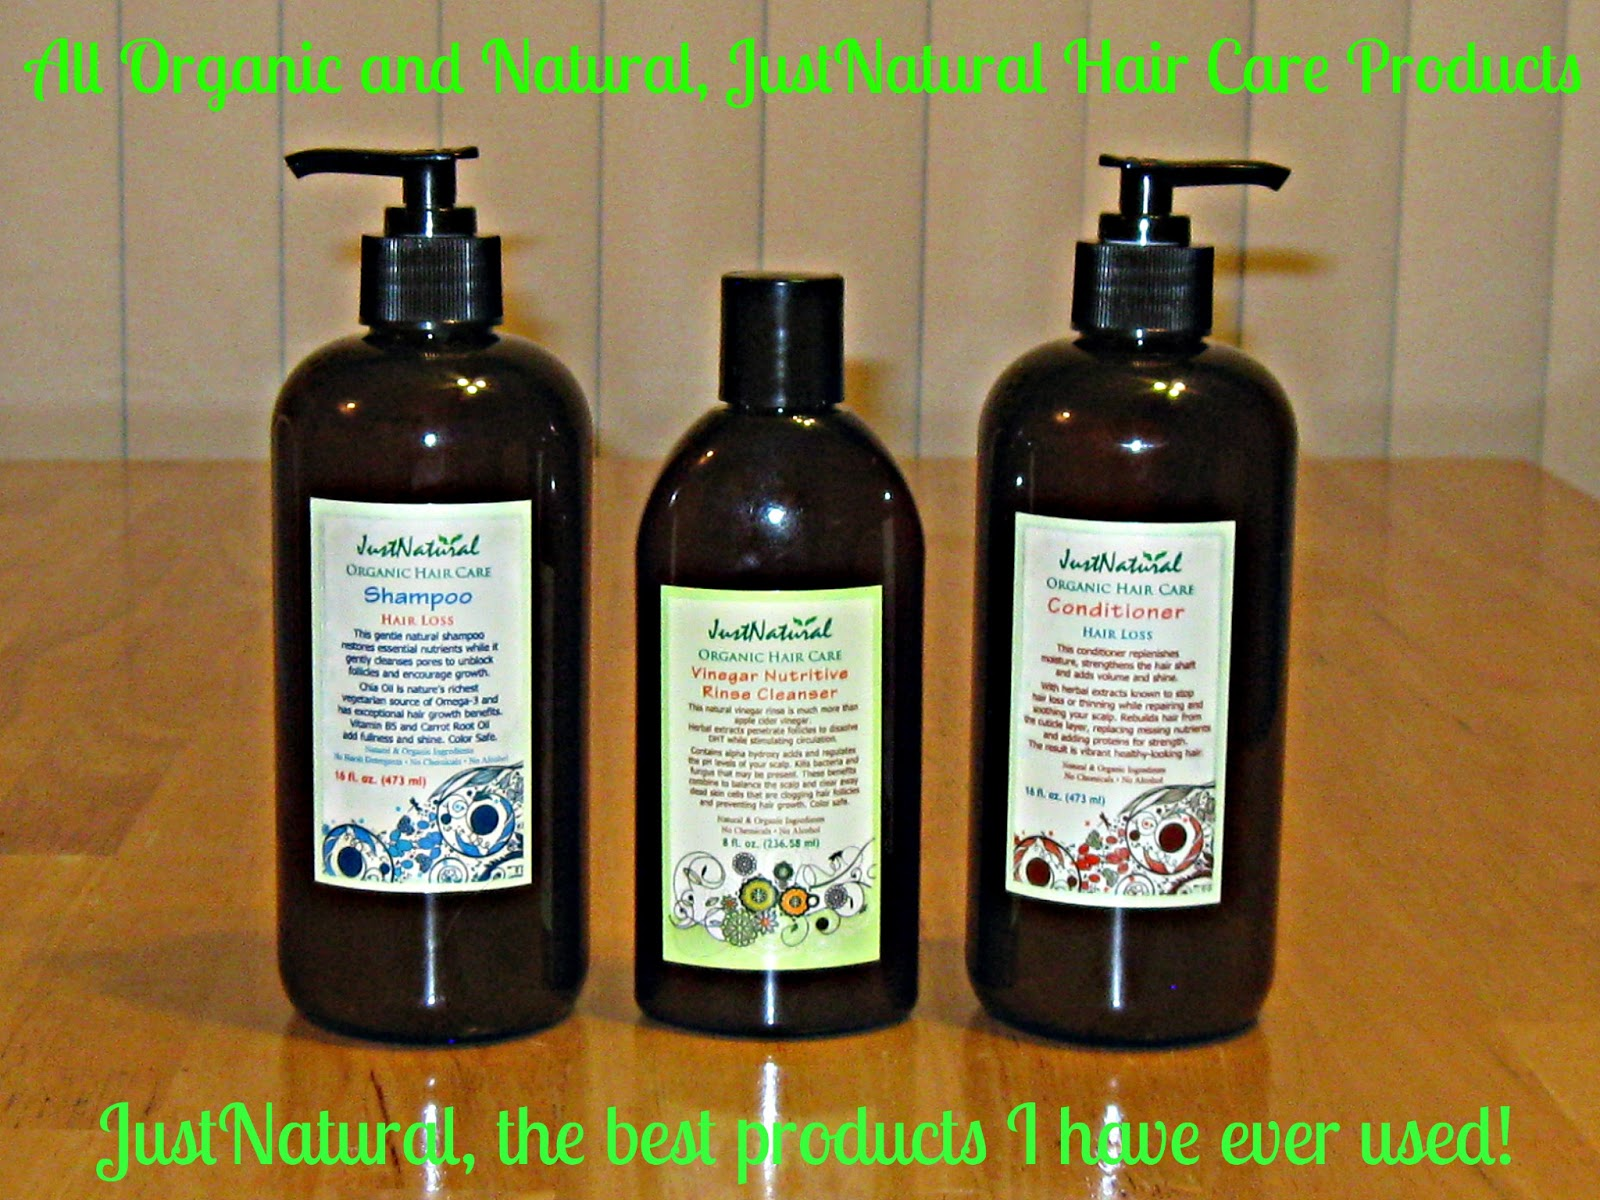 Botanical Hair Care including Proteins and Vitamins, Intensive Treatments, Shampoos, Conditioners, Vinegar Rinse Cleanser, Dry or Frizzy Hair, Hair Loss, Thicker, Thin or .